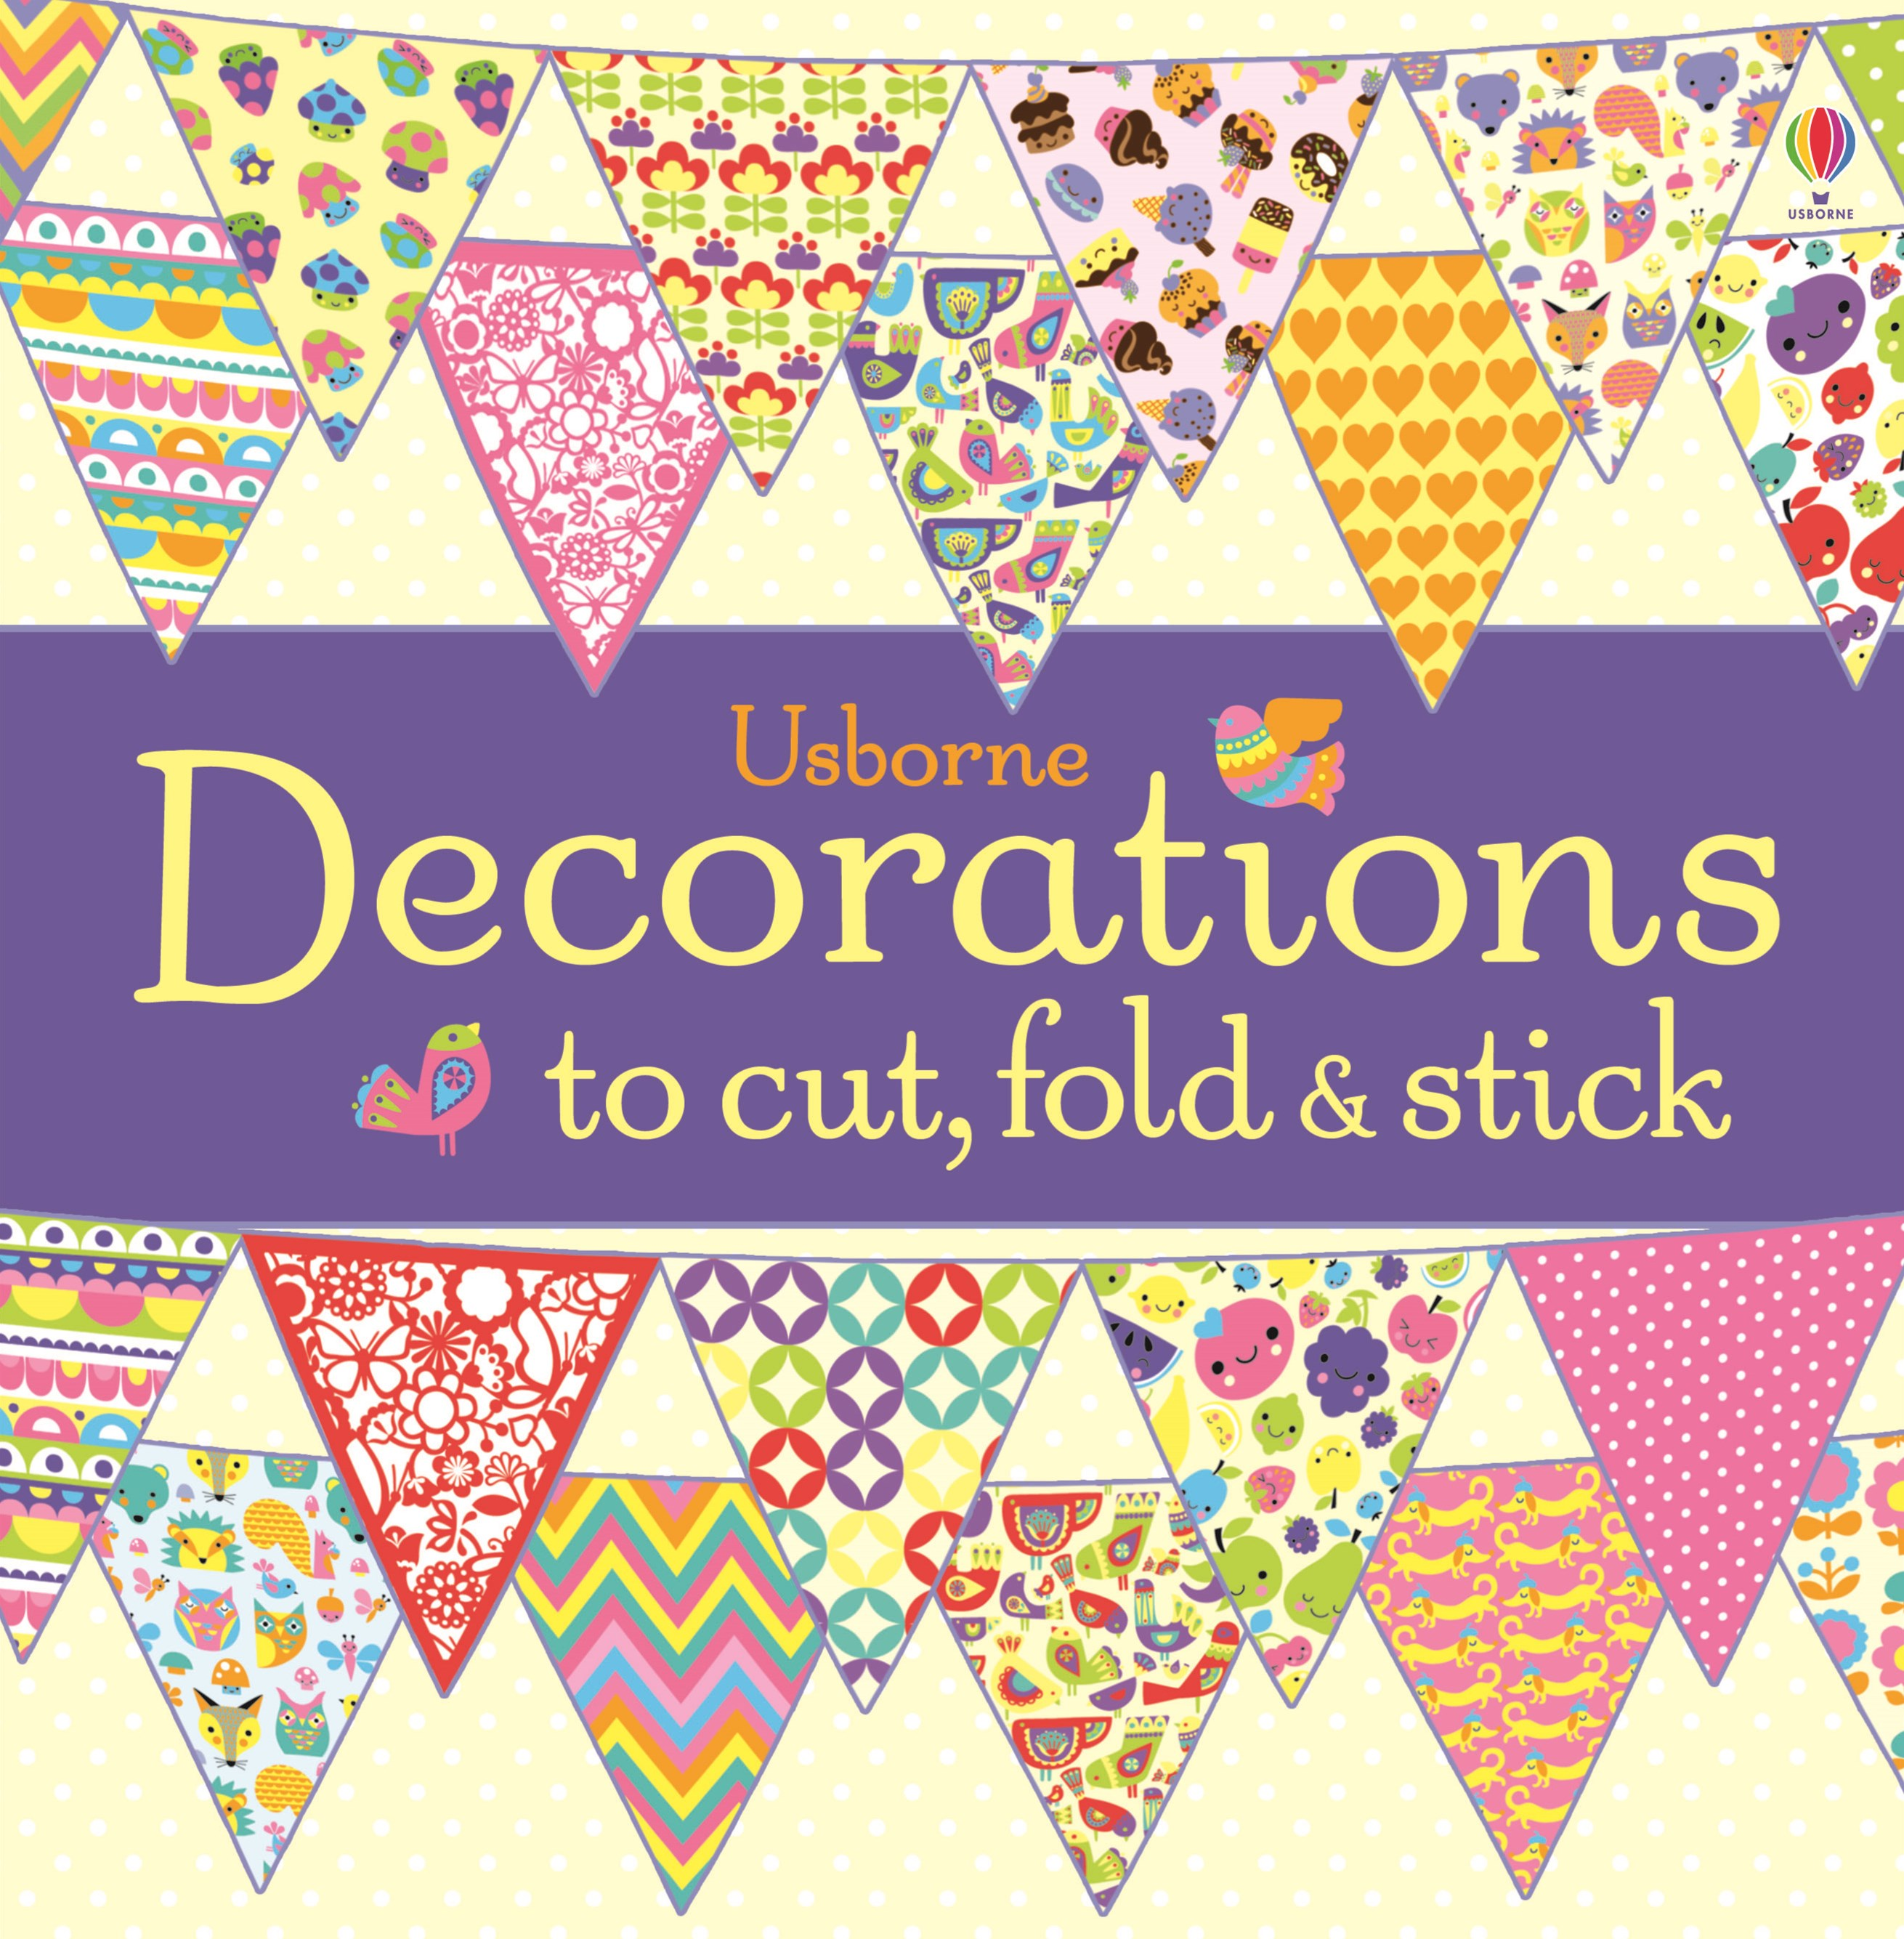 Decorations to Cut, Fold and Stick